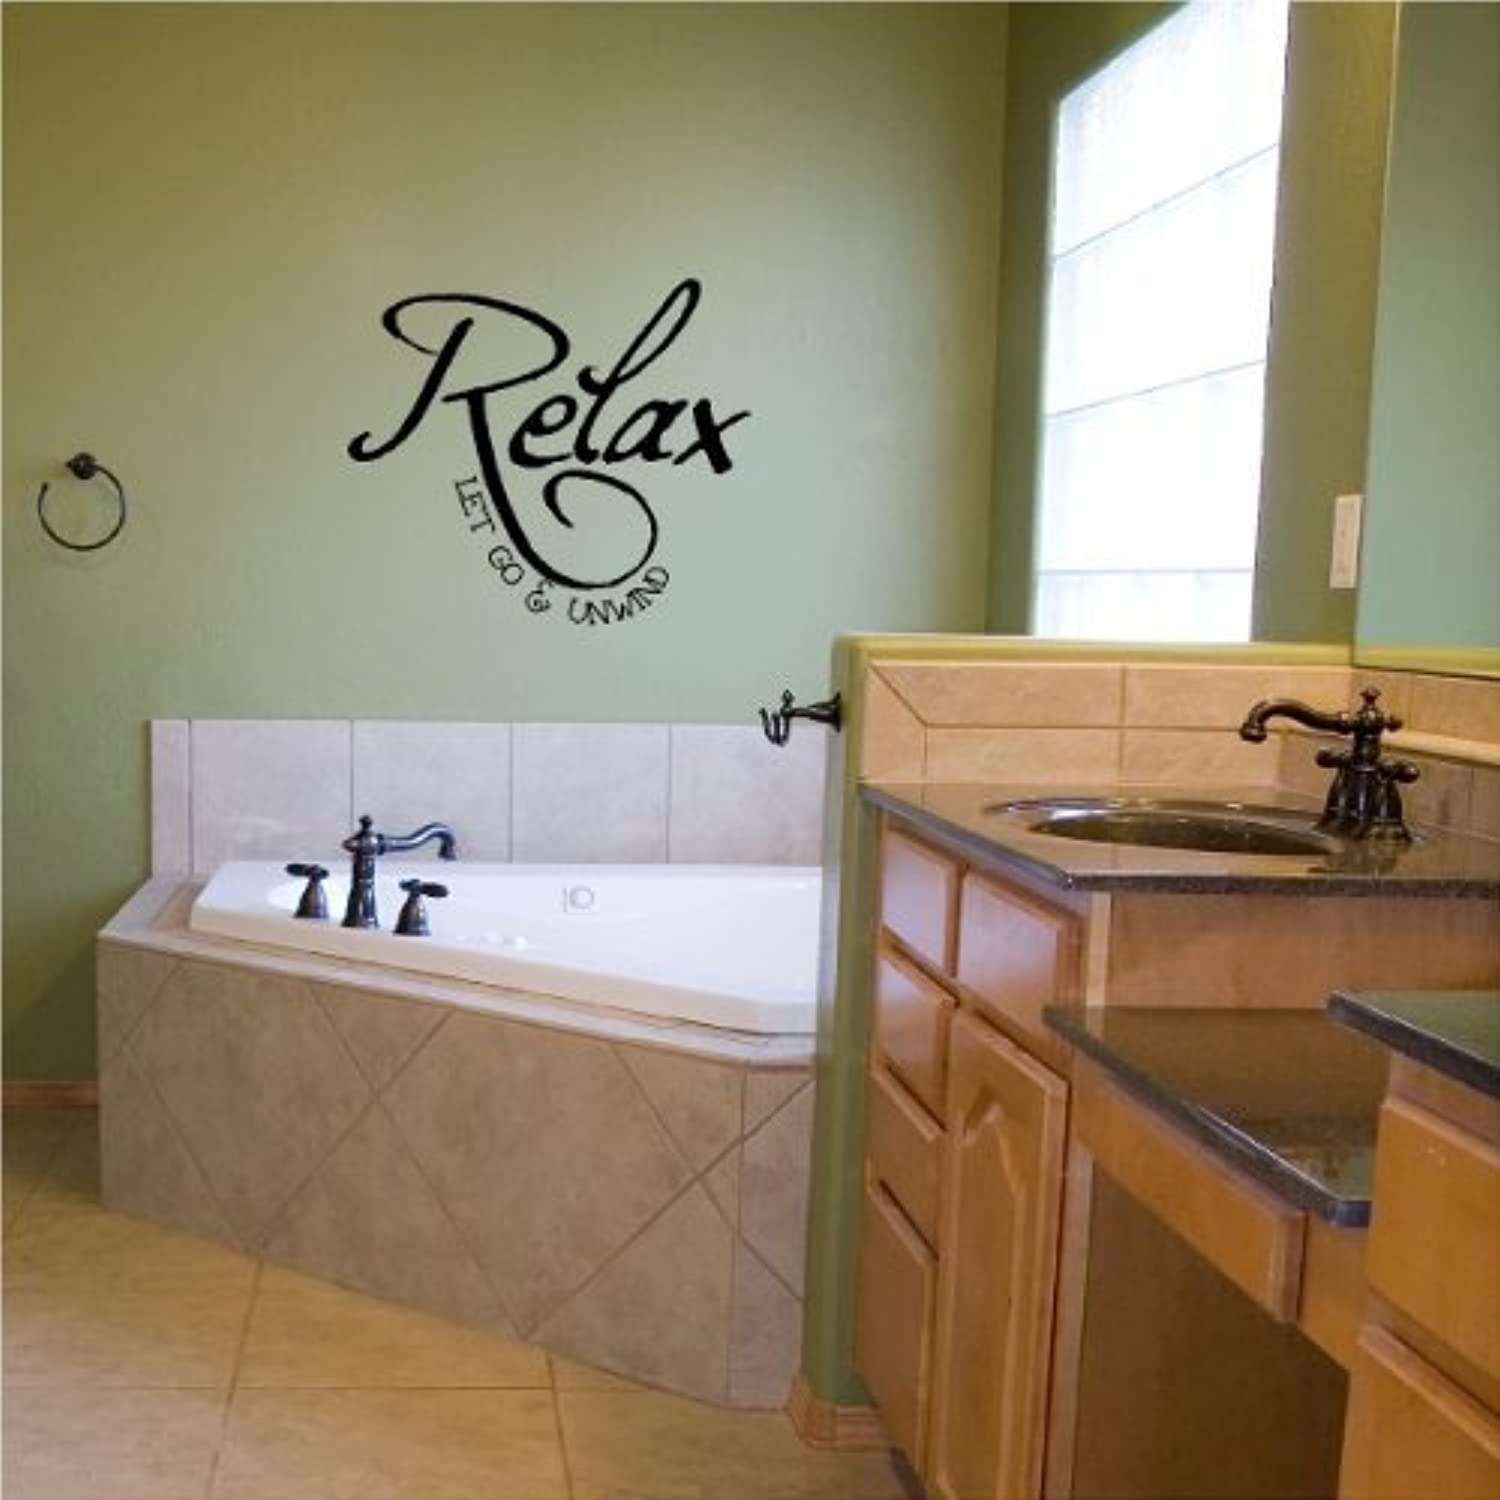 primera vez respuesta Relax Relax Relax Let Go And Unwind (A) vinyl wall decal by Wall Saying Vinyl Lettering  garantizado